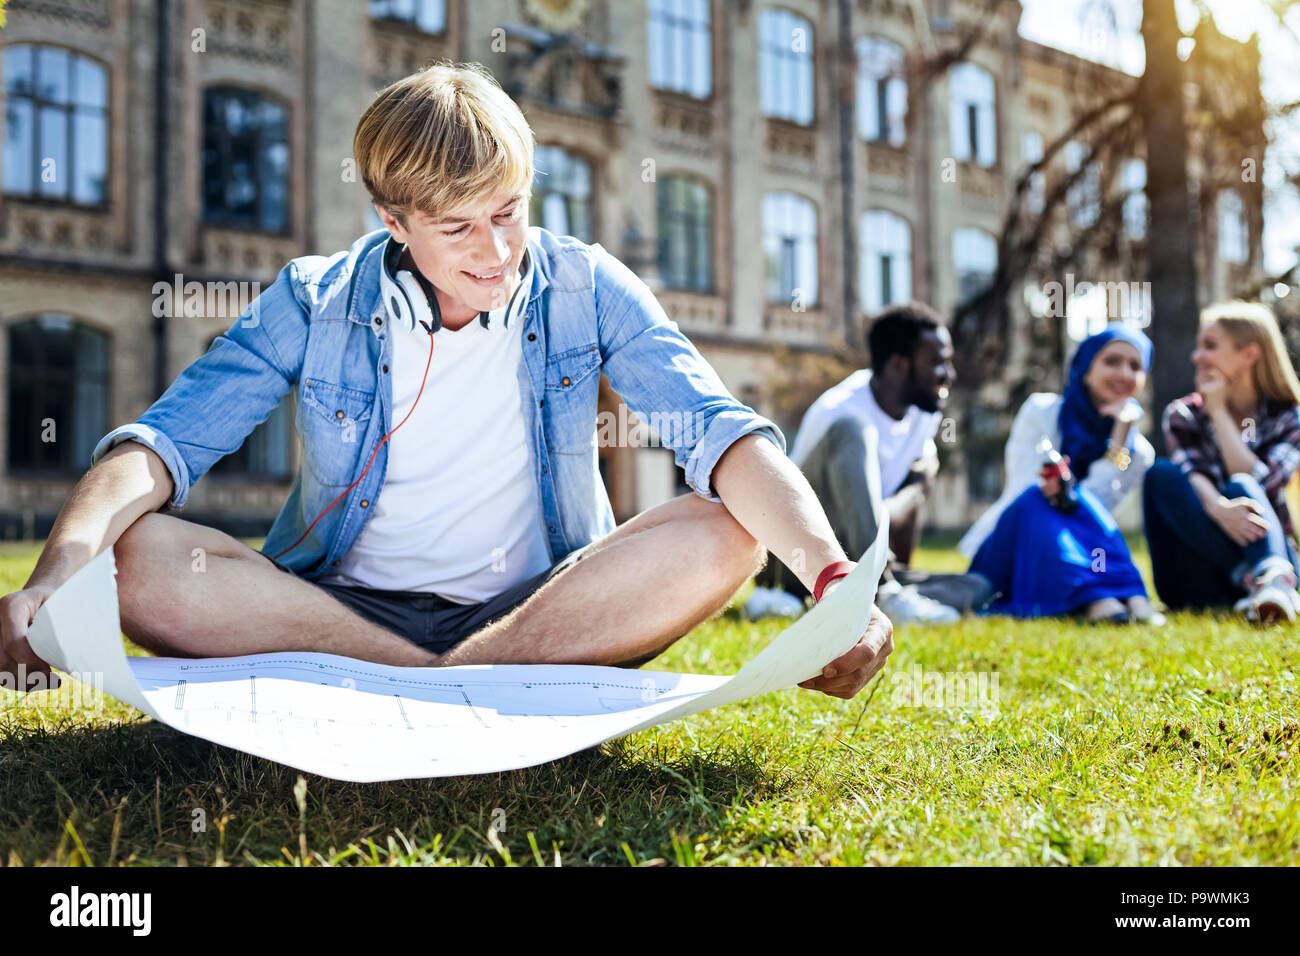 Joyful guy looking at his project outdoors - Stock Image